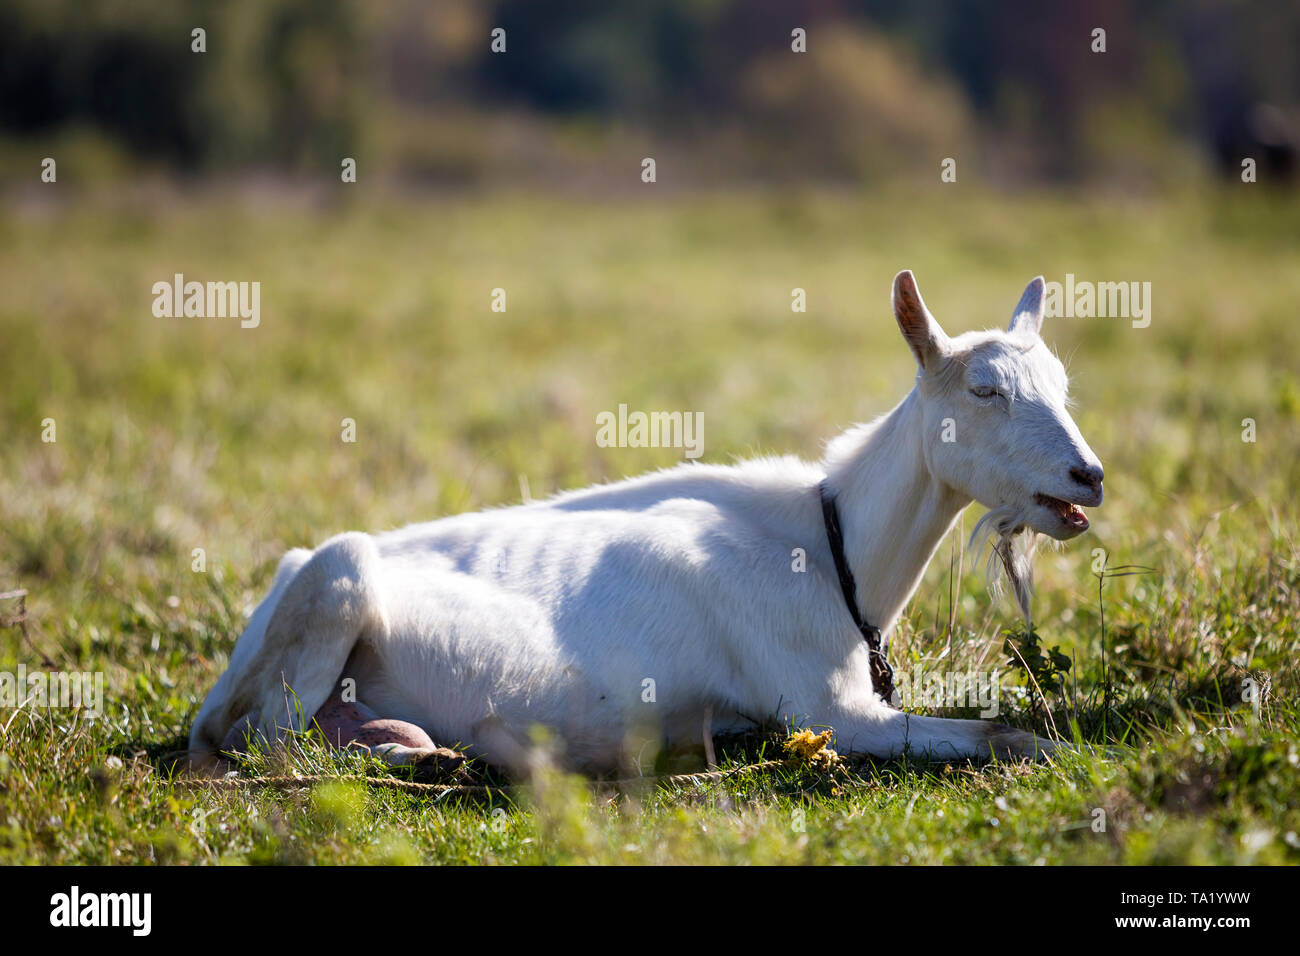 Portrait of white goat with beard on blurred bokeh background. Farming of useful animals concept. - Stock Image